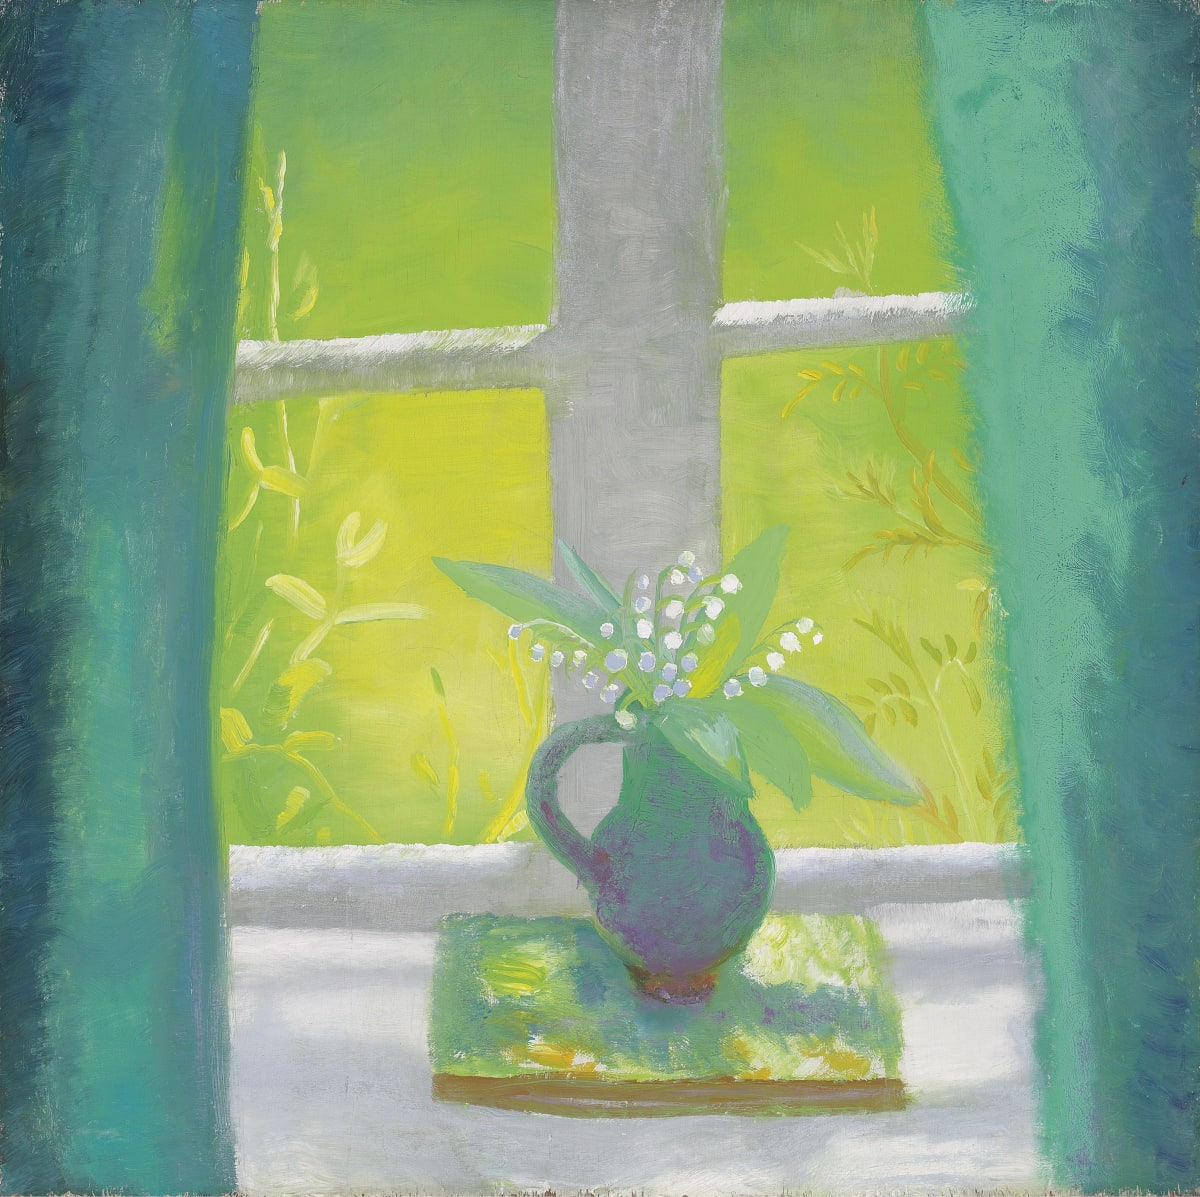 Winifred NICHOLSON (1893-1981) The South Parlour, c.1950 oil on panel 24 ½ x 24 ½ inches / 63 x 63 cm signed and inscribed 'South Parlour/Winifred Nicholson/Bankshead Brampton/Cumberland' (on a label attached to the reverse) There is a portrait thought to be of Ben Nicholson by the same hand, on the reverse.